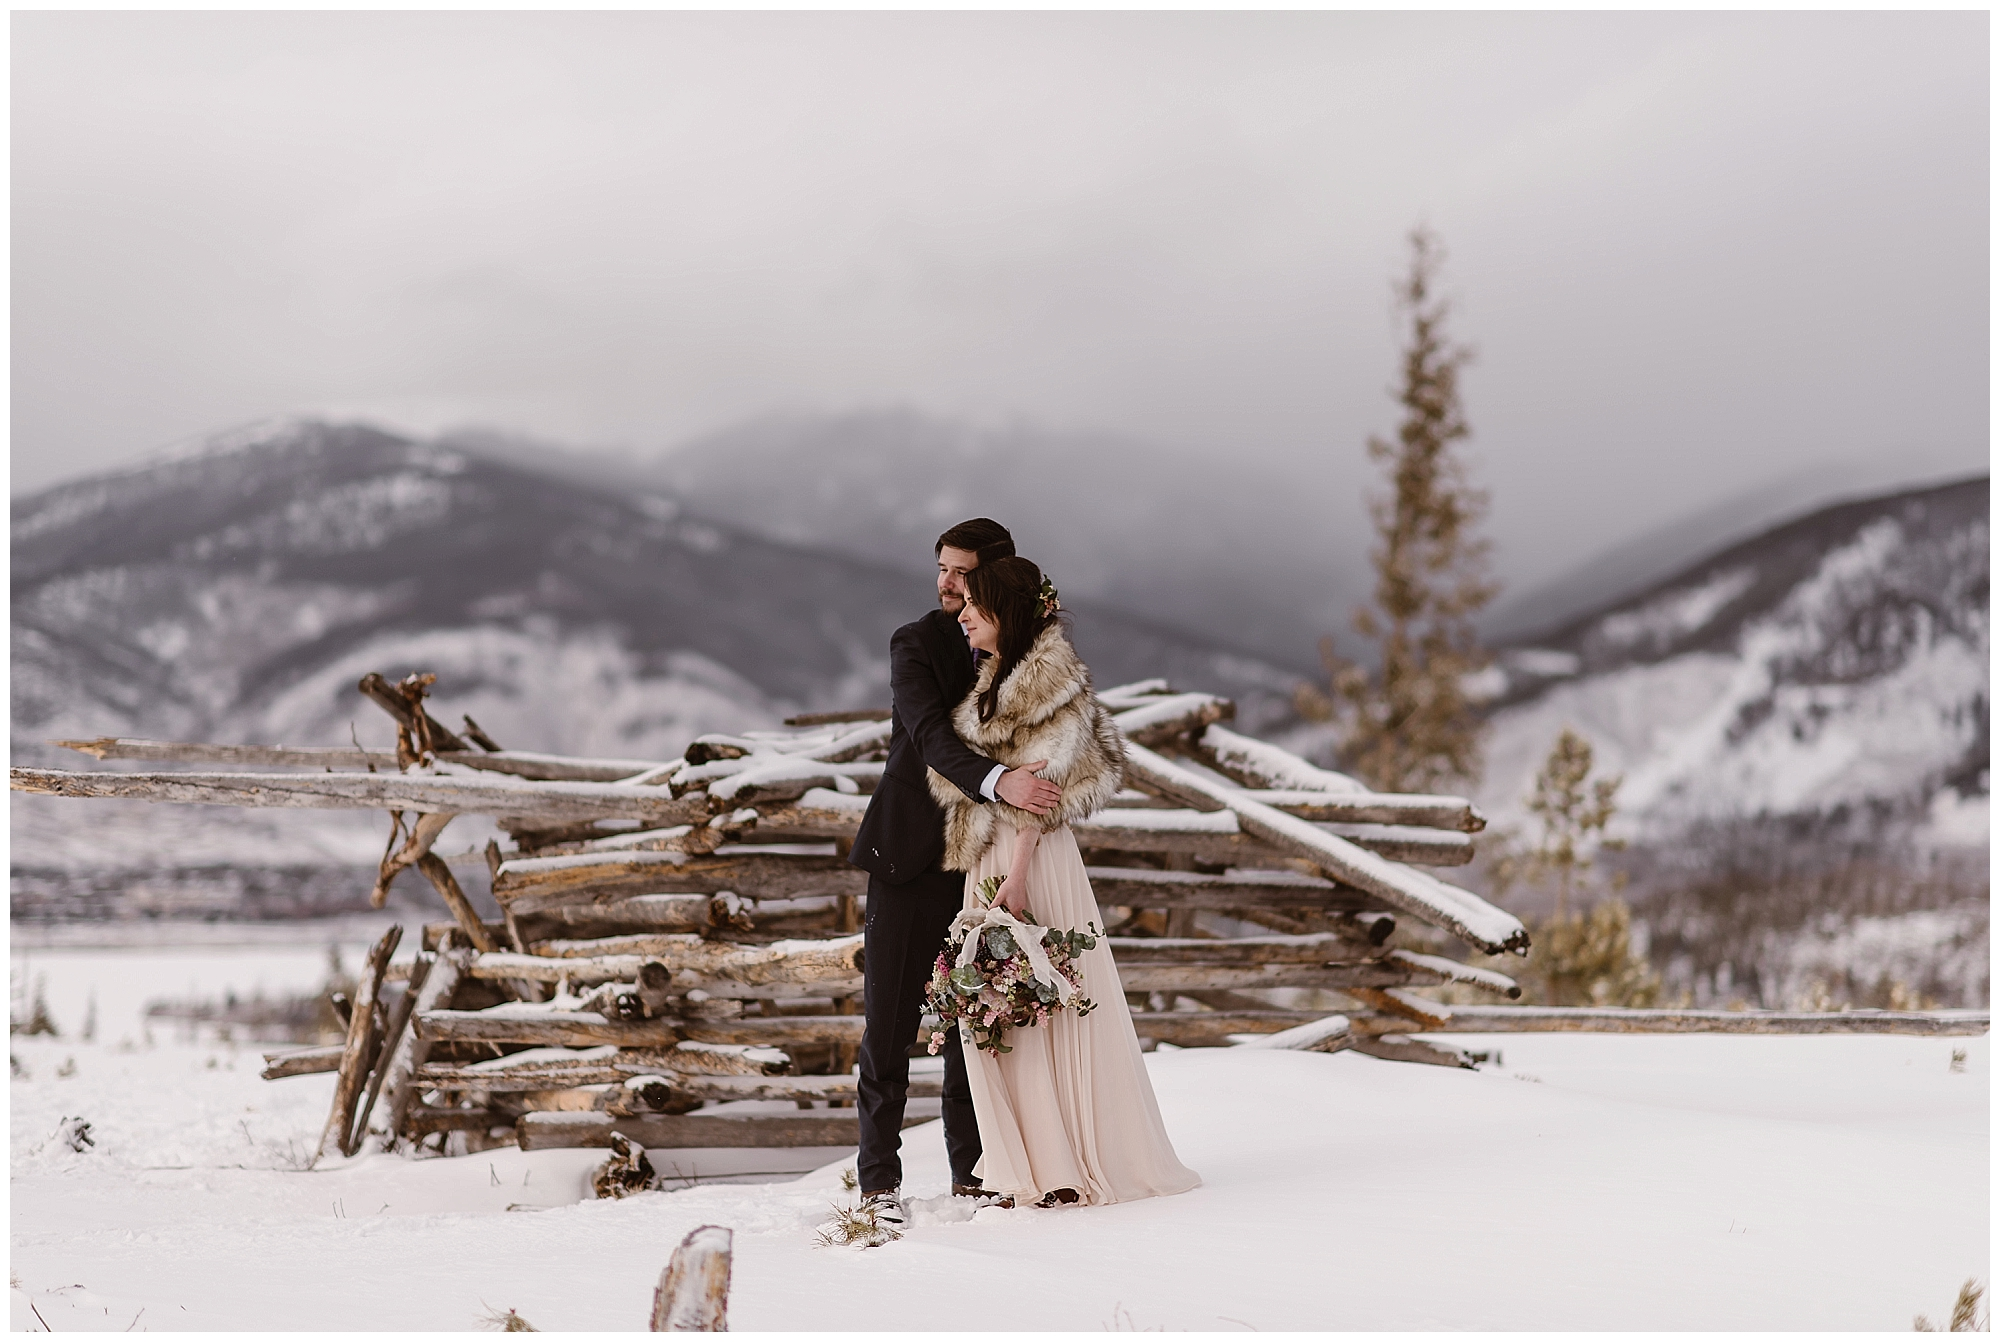 Marlayna and Austin embrace outside in the snow with the Rocky Mountains behind them following their outdoor adventure winter elopement ceremony. Photo by Adventure Instead, Maddie Mae Elopement Photographers.